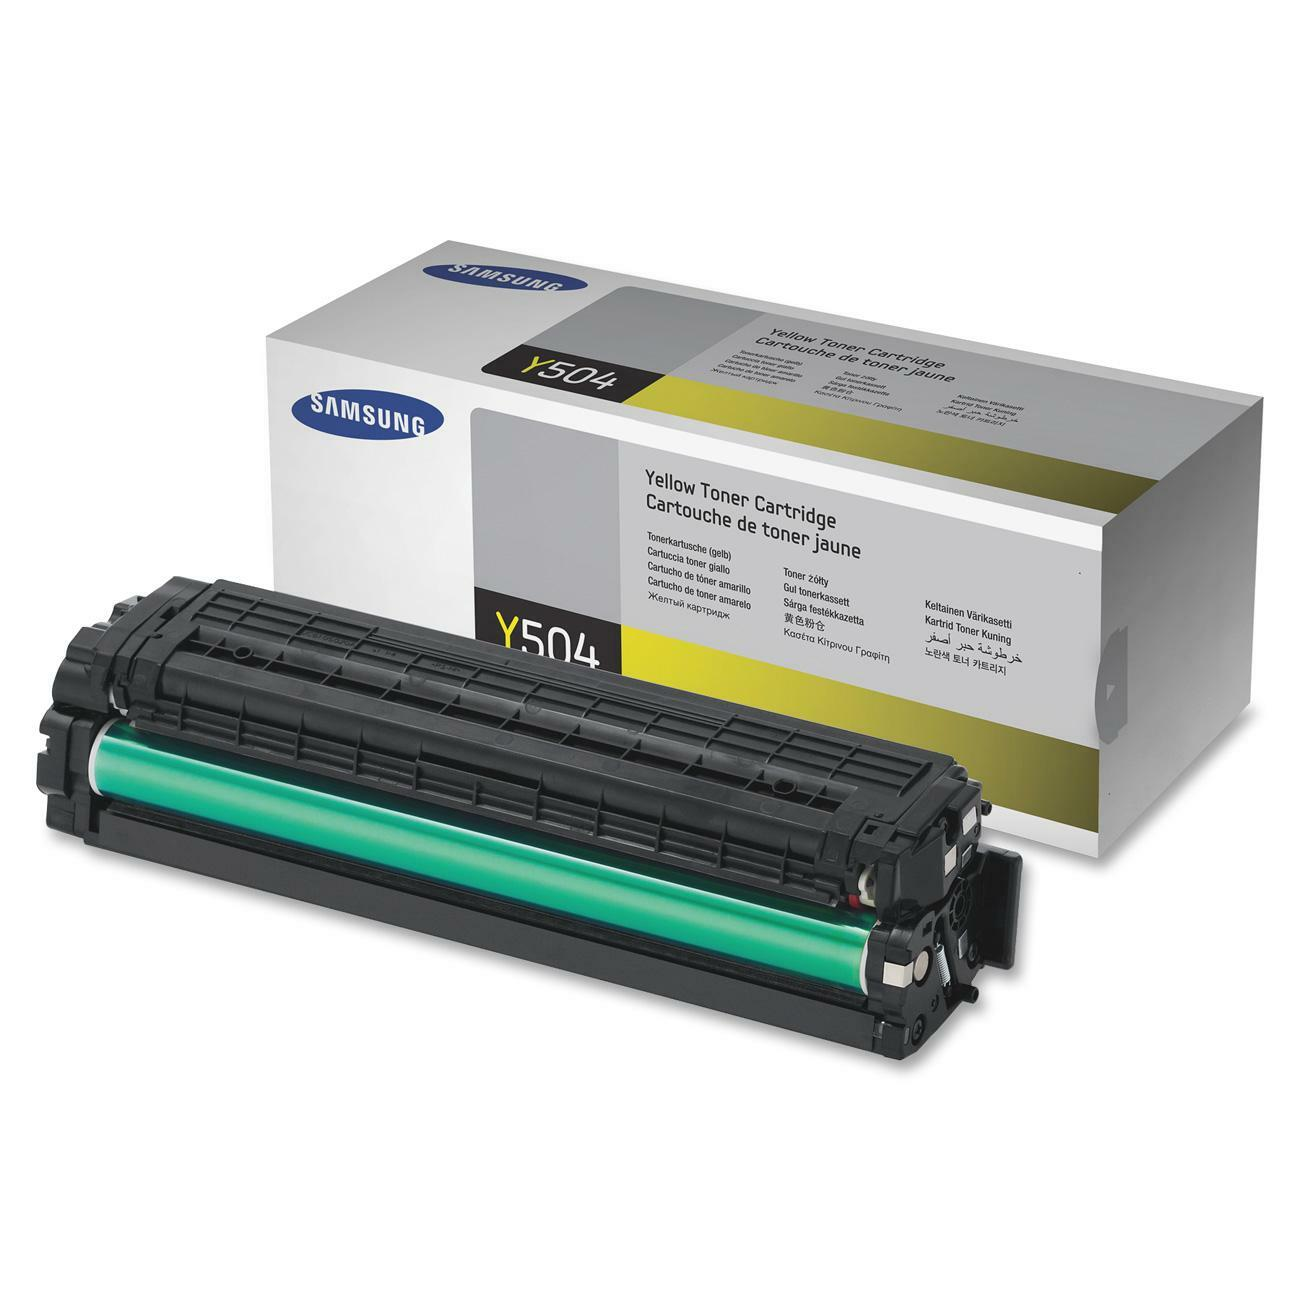 Samsung CLT-Y504S Toner Cartridge - Yellow - Thumbnail 0